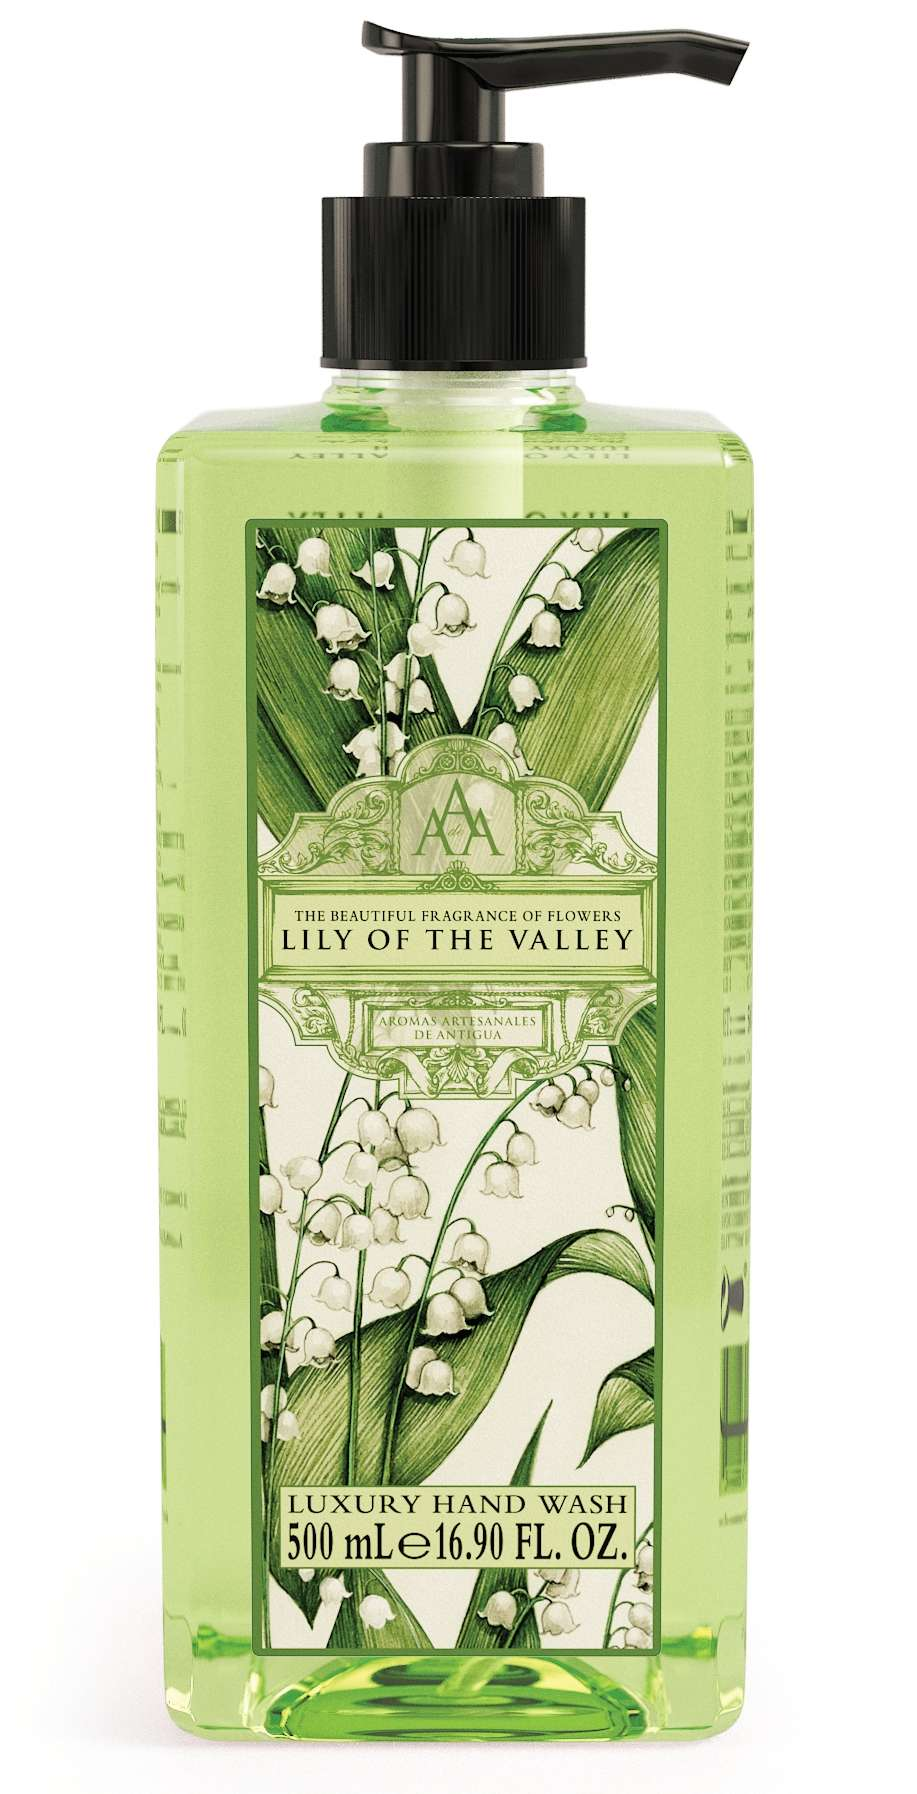 AAA Lily Of The Valley hand wash